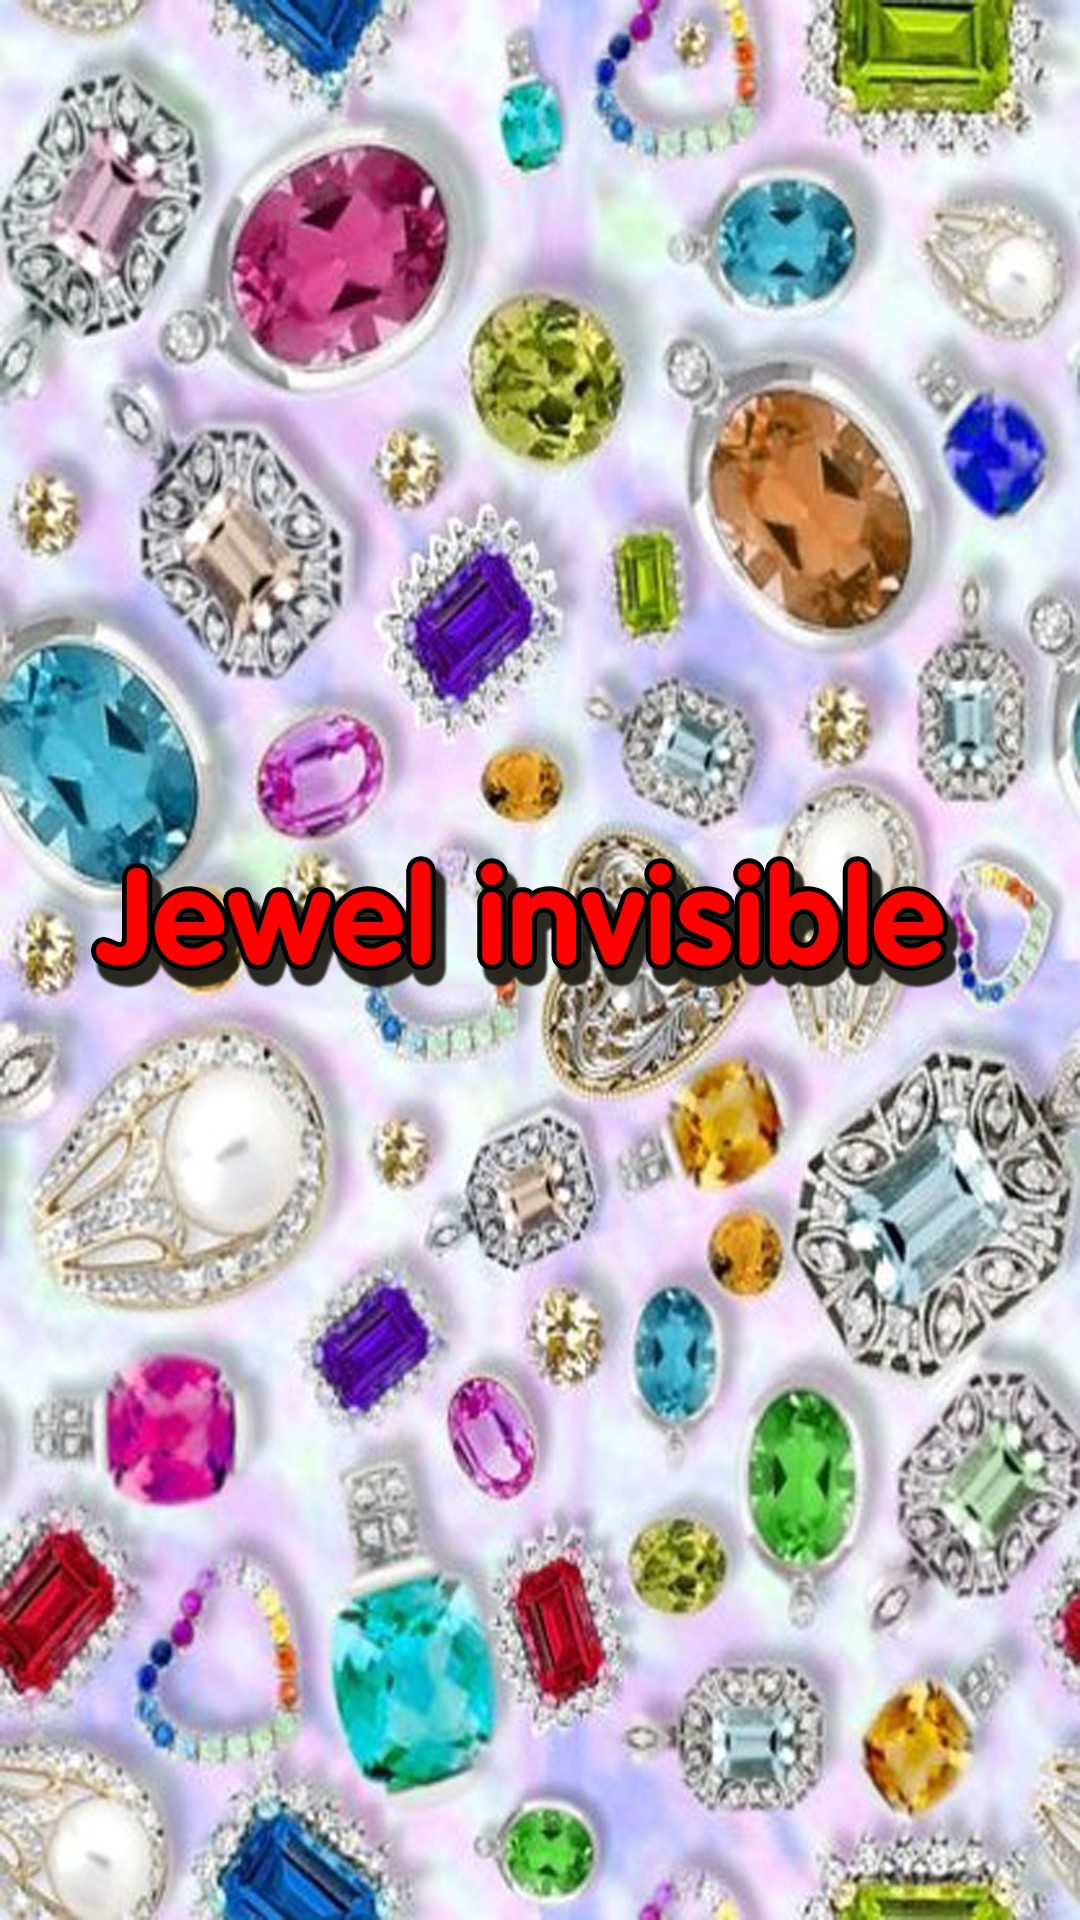 Jewel Invisible